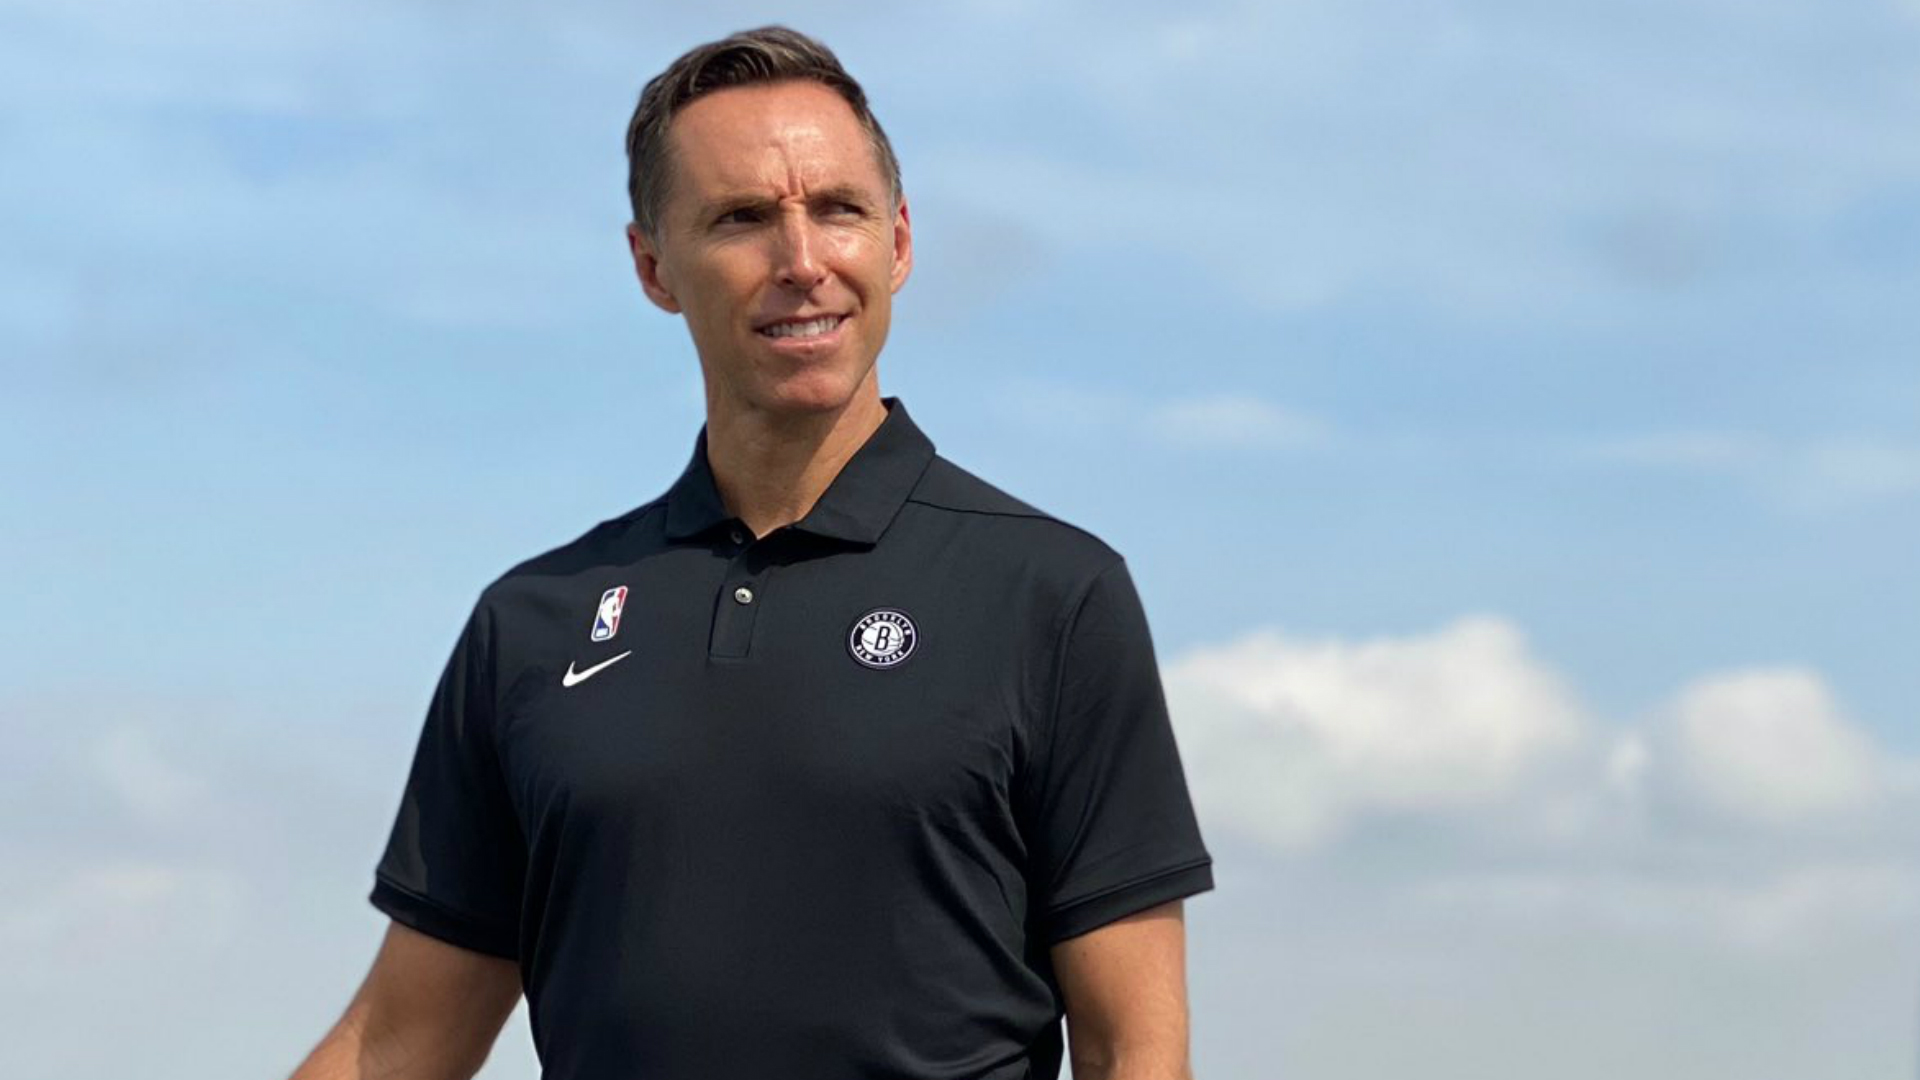 Nets playing for NBA championship, insists Steve Nash